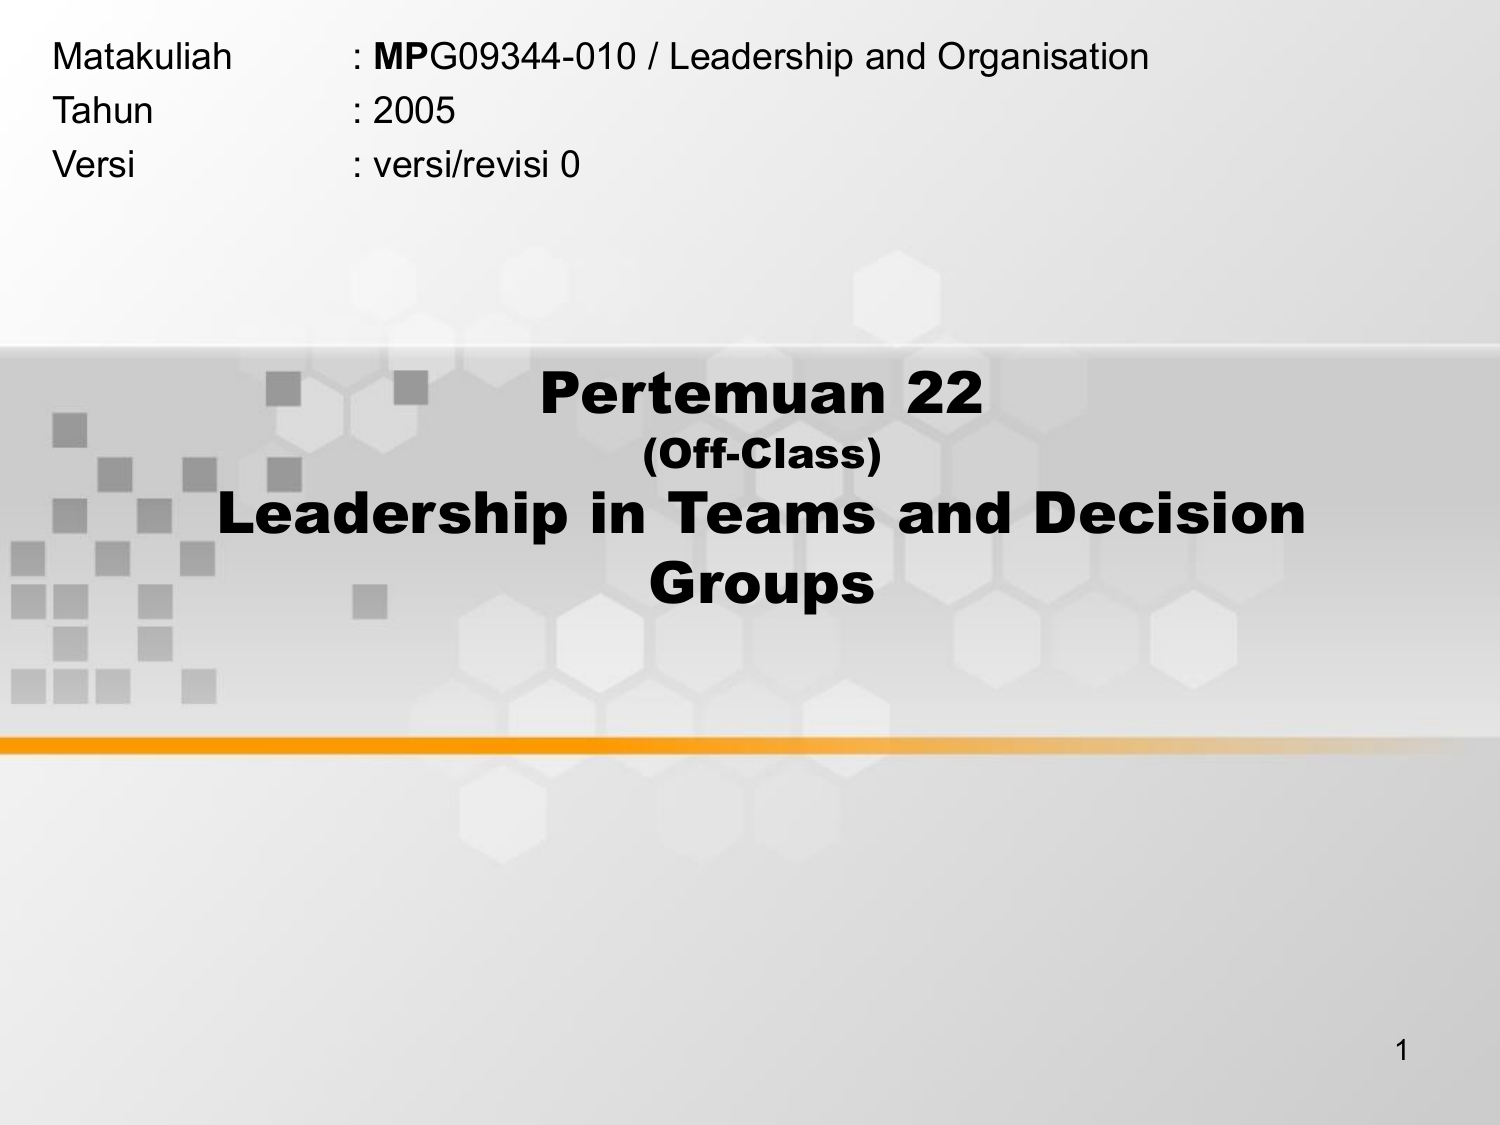 leadership in teams and decision groups